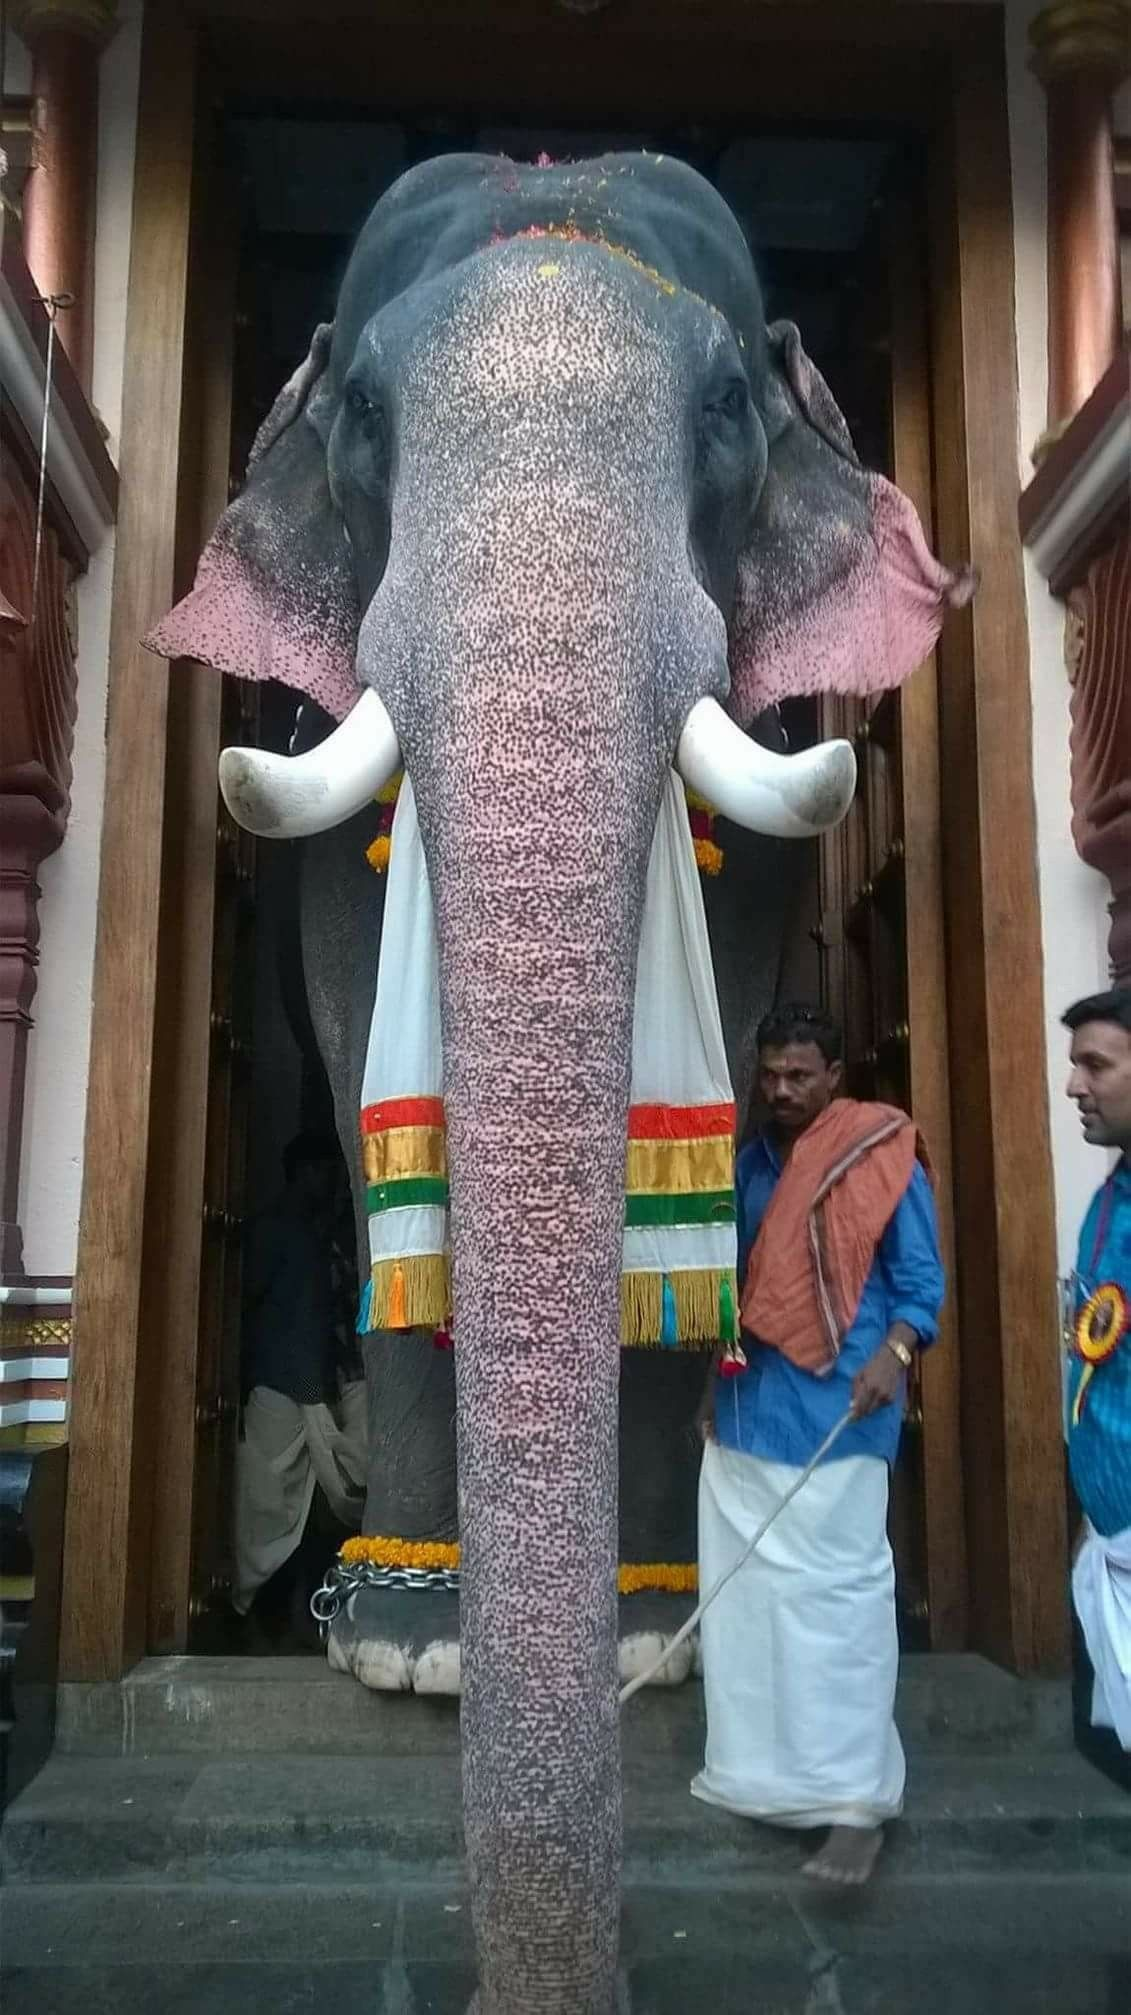 Pin On Asian Elephant Abuse Torture